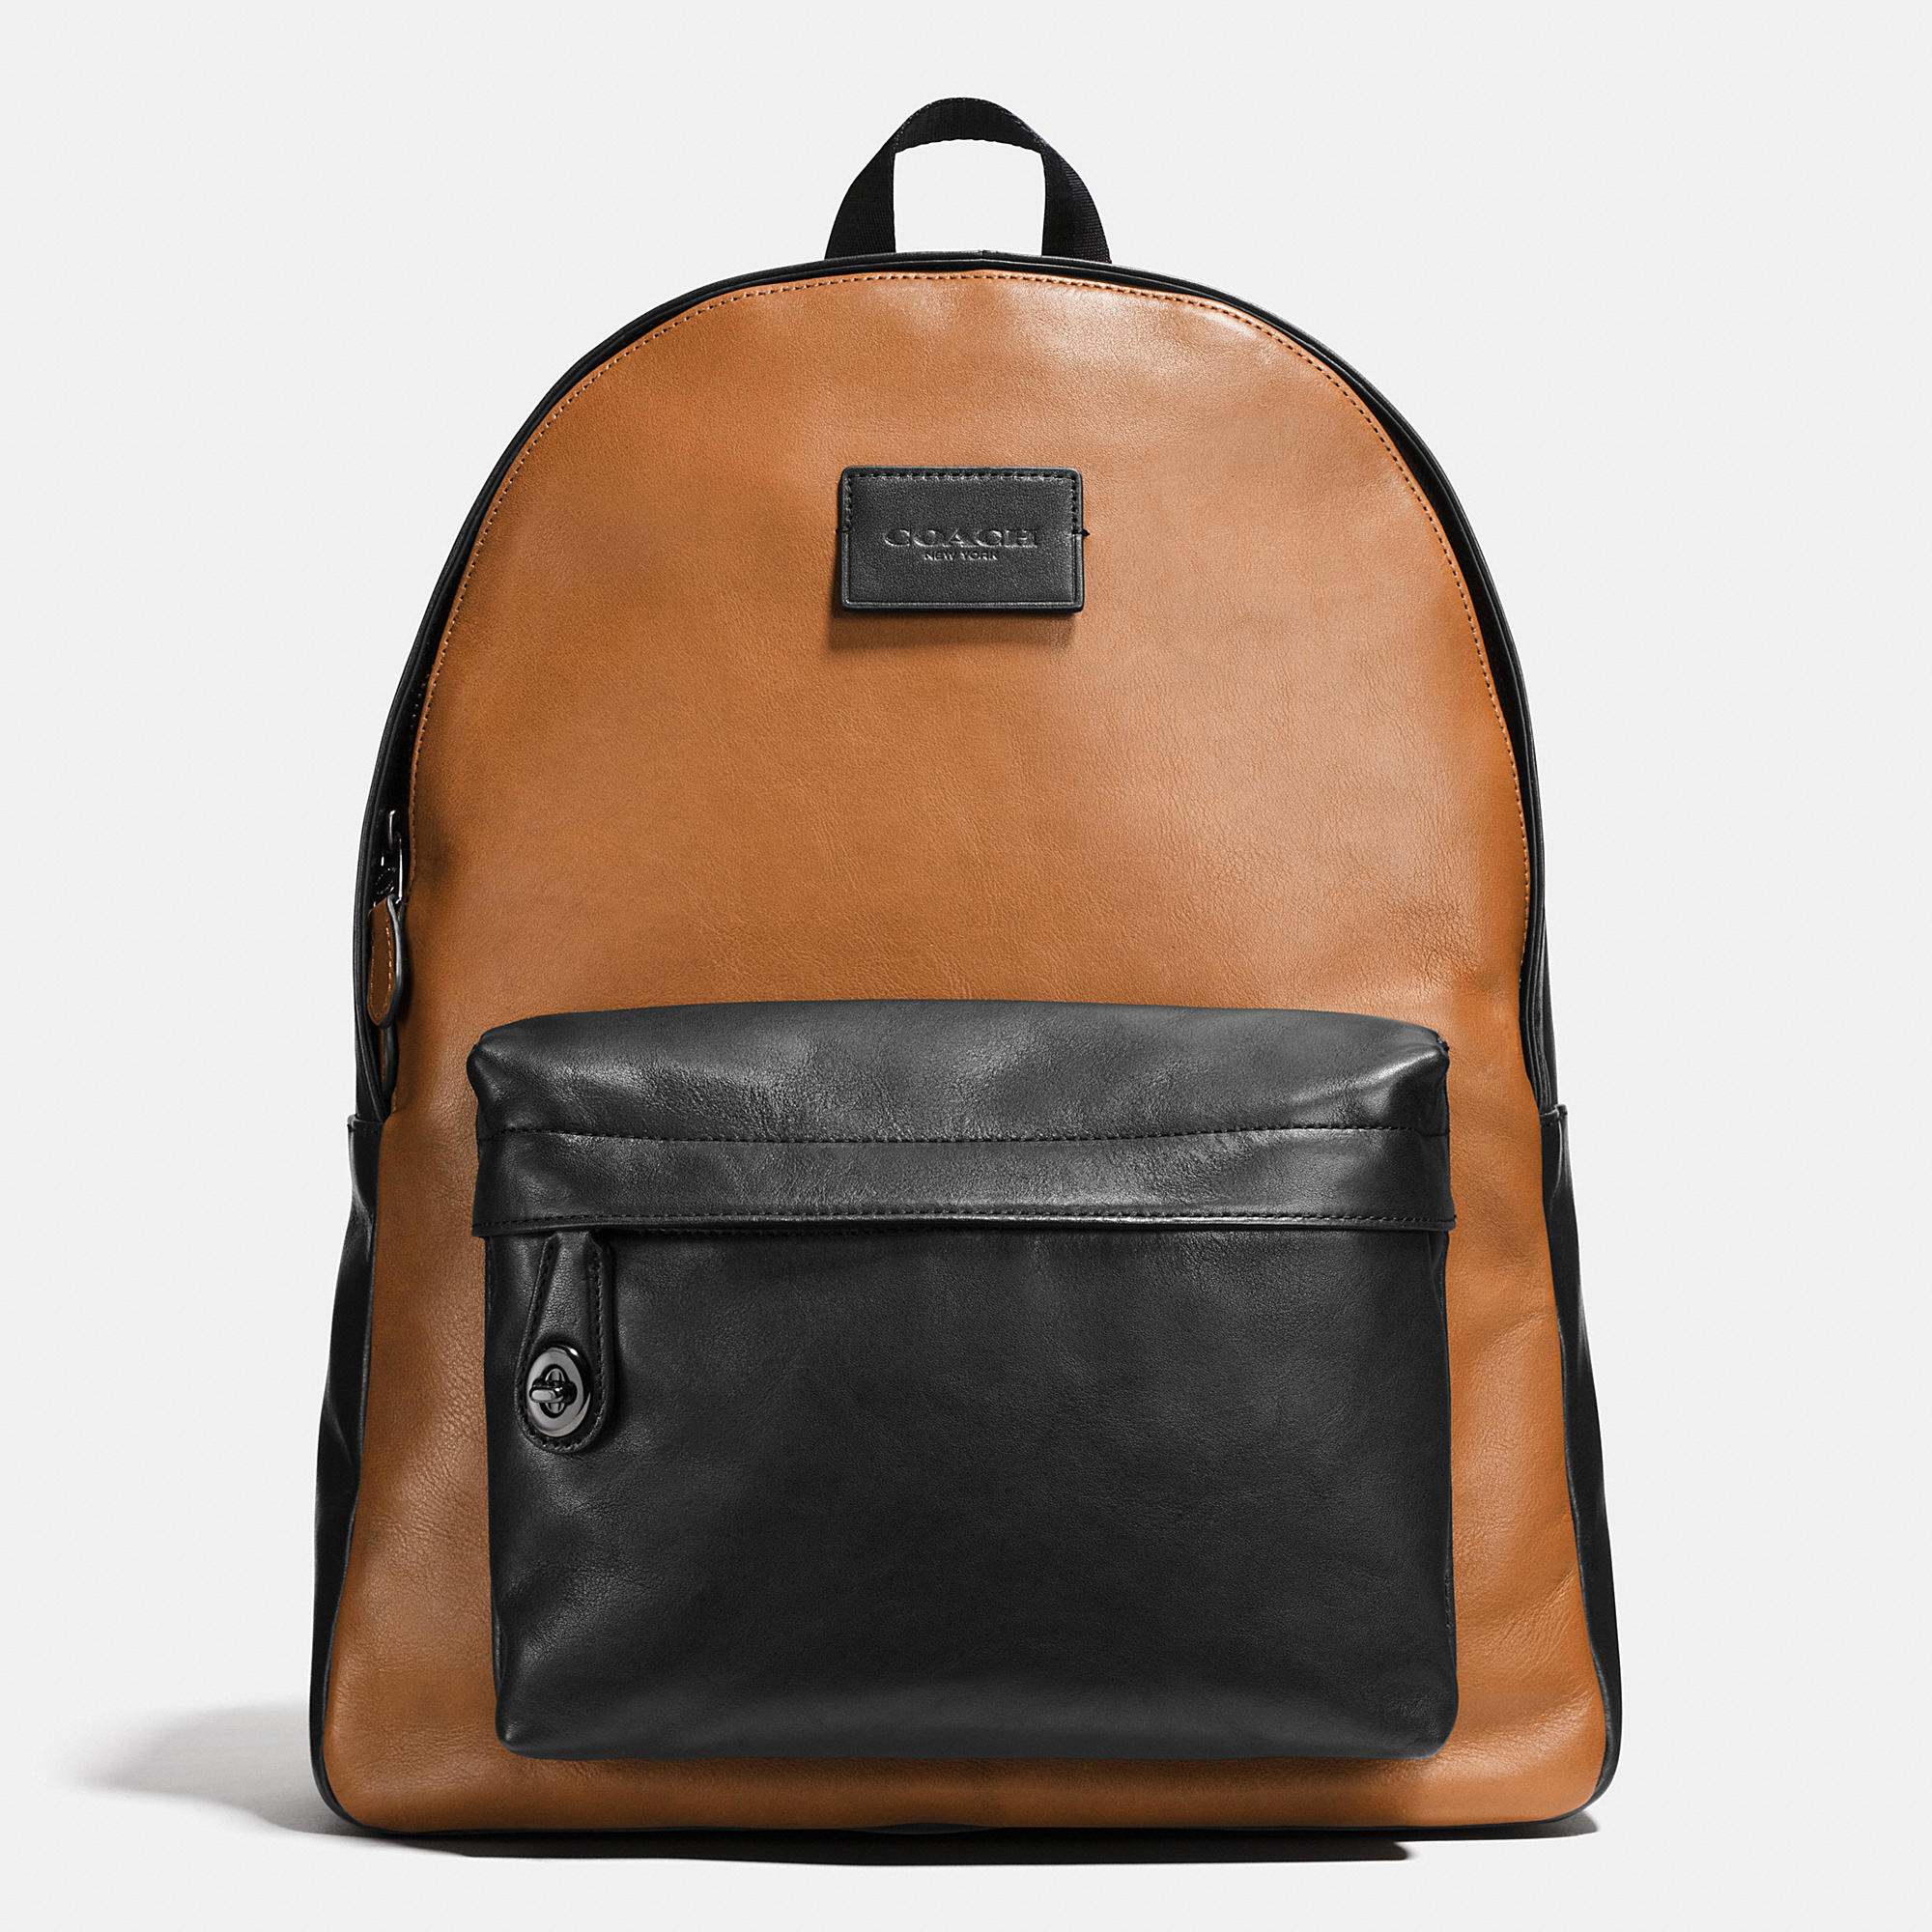 Lyst - Coach Campus Backpack In Sport Calf Leather in ...